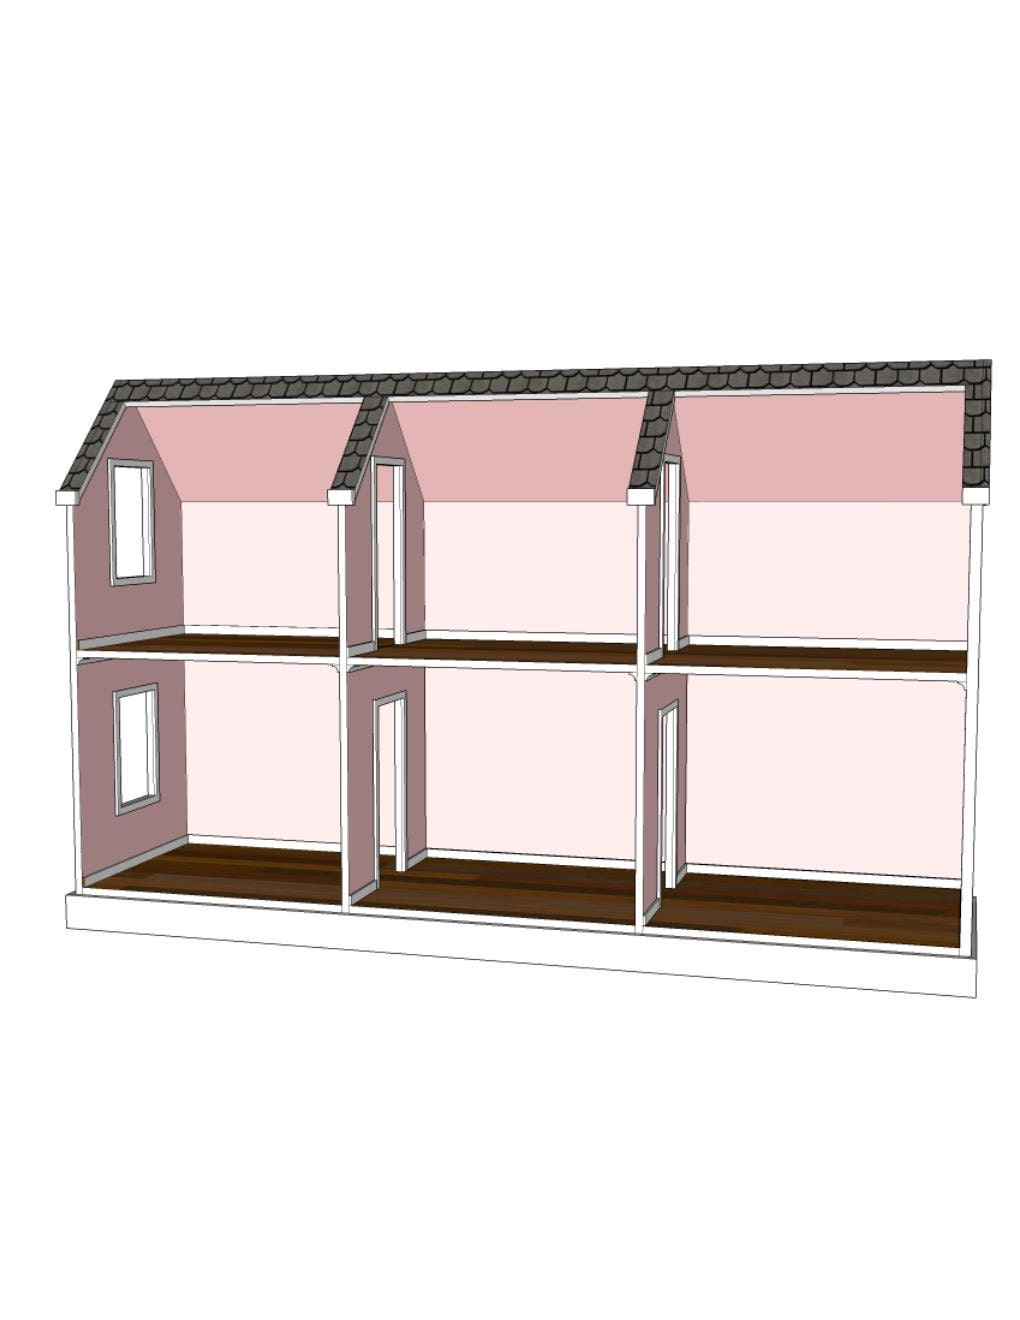 Doll House Plans for American Girl or 18 inch dolls 6 Room